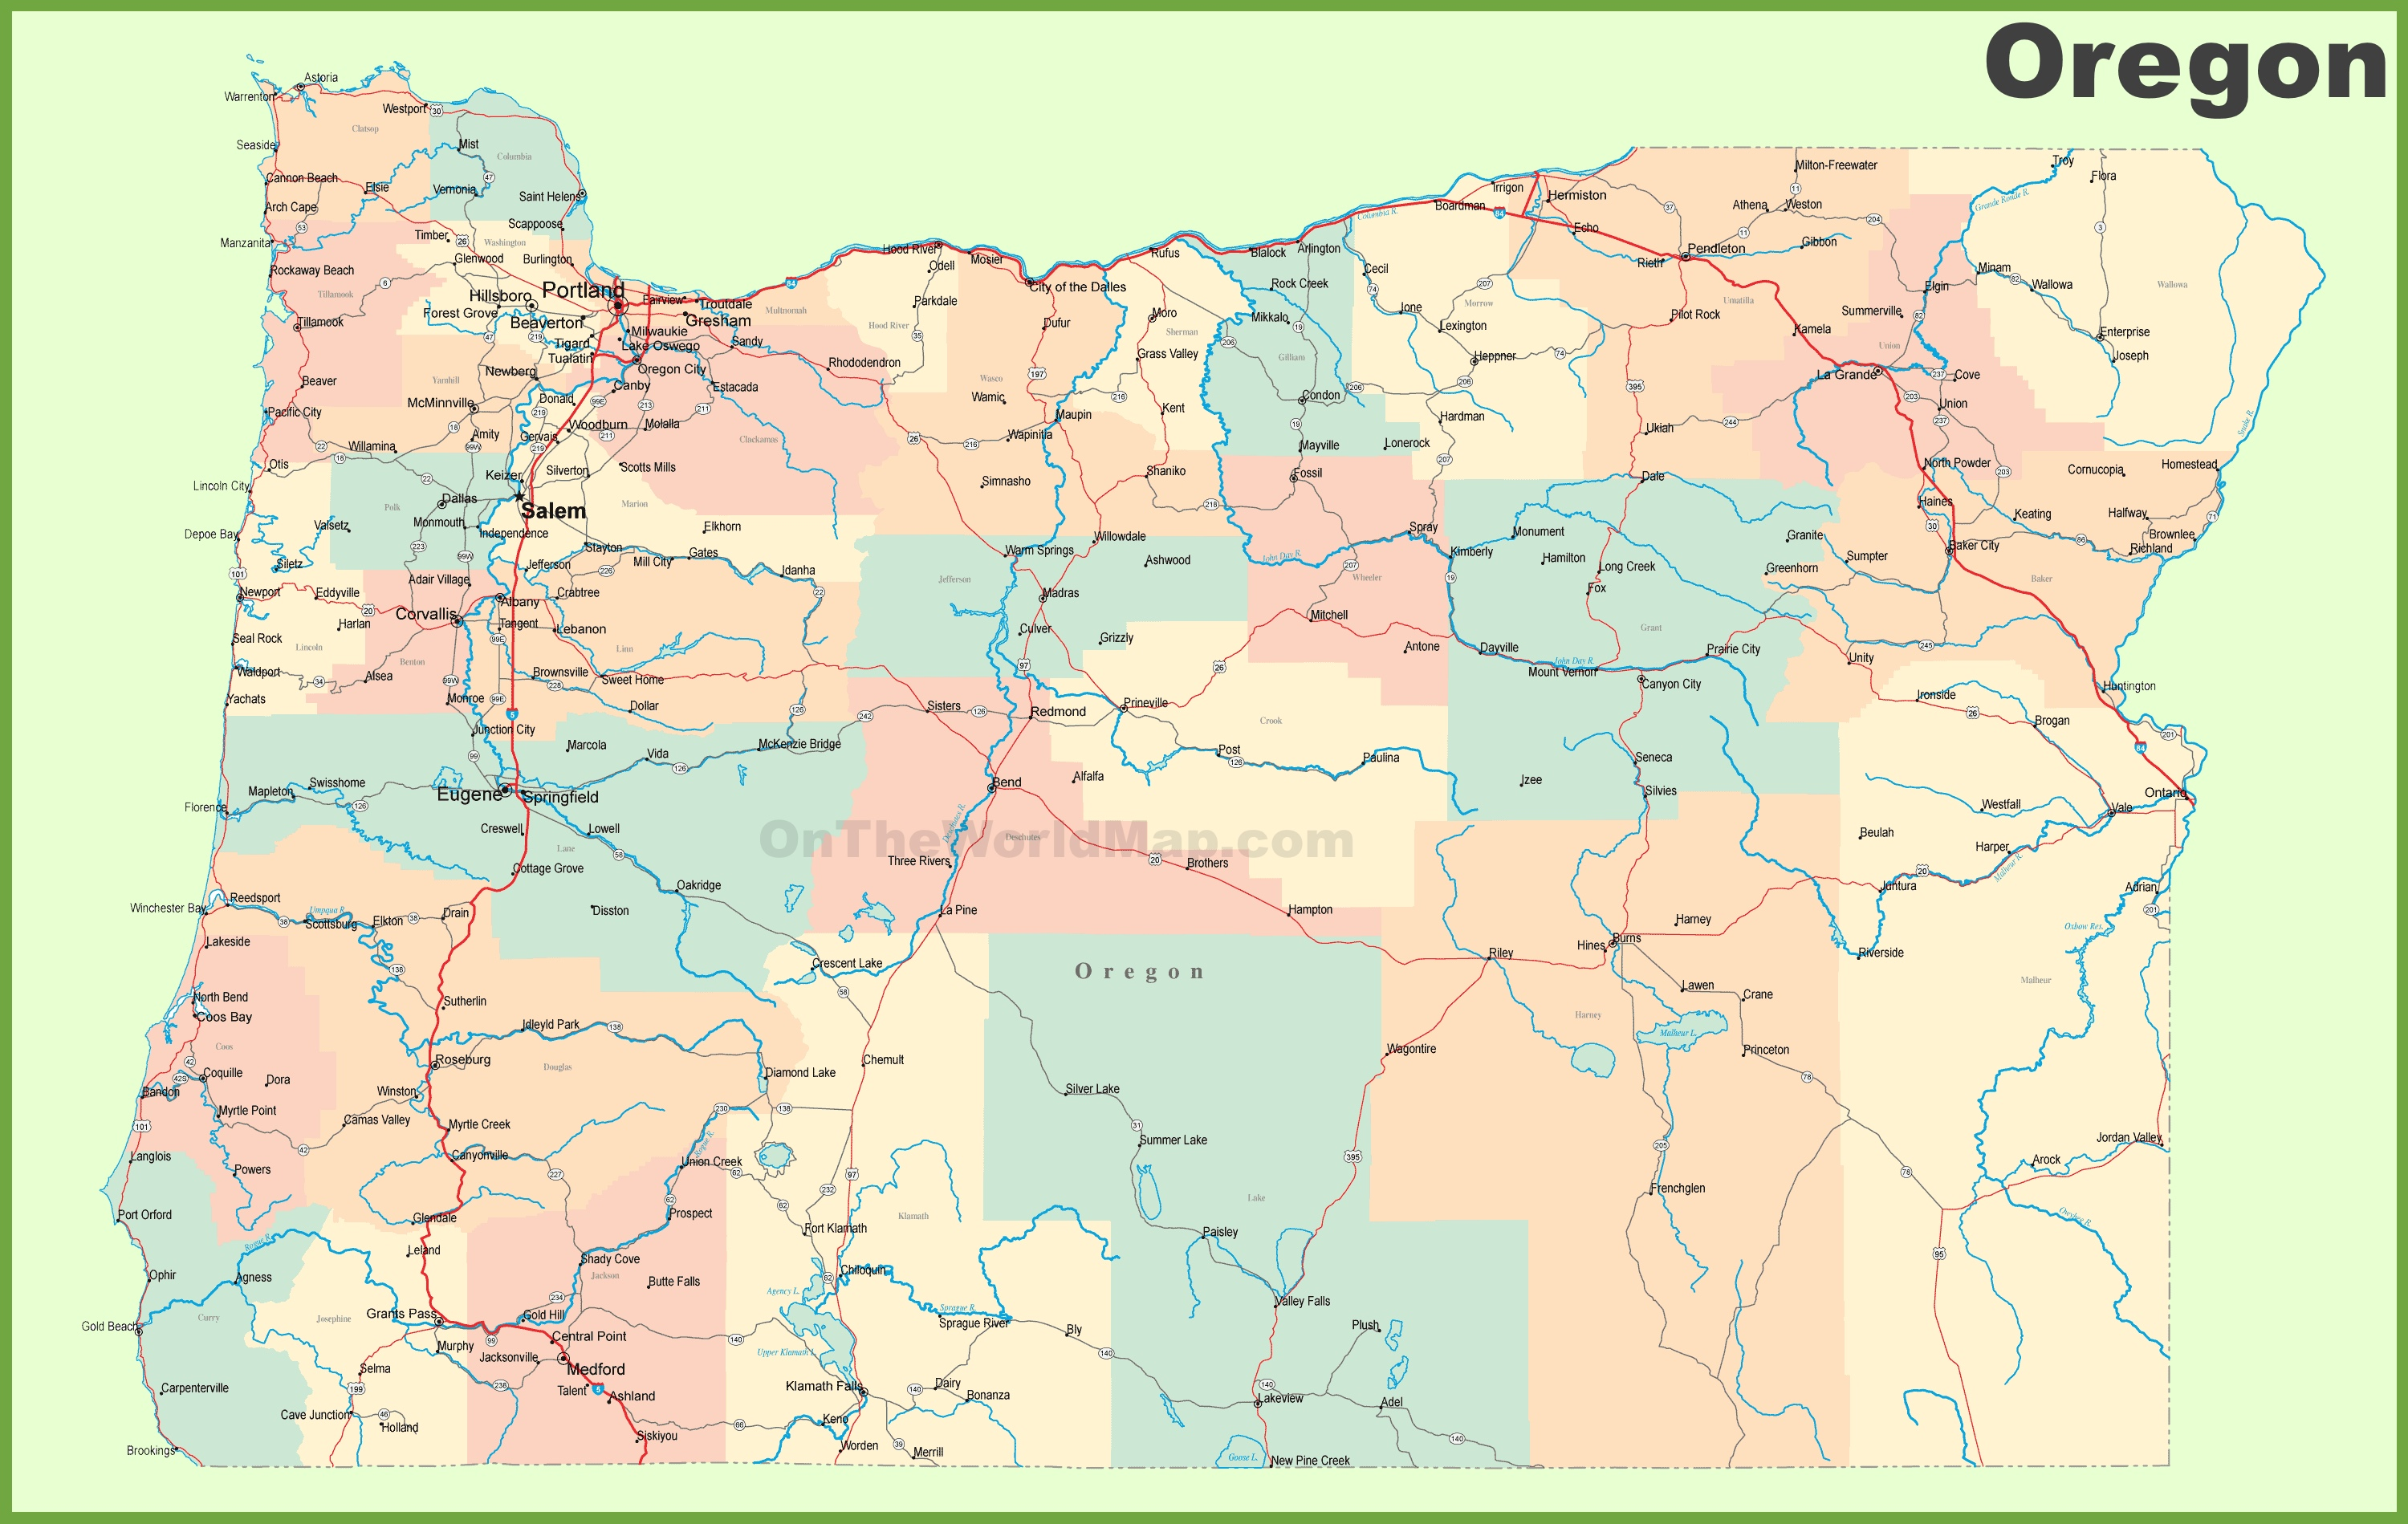 Oregon State Maps USA Maps Of Oregon OR - State map of oregon